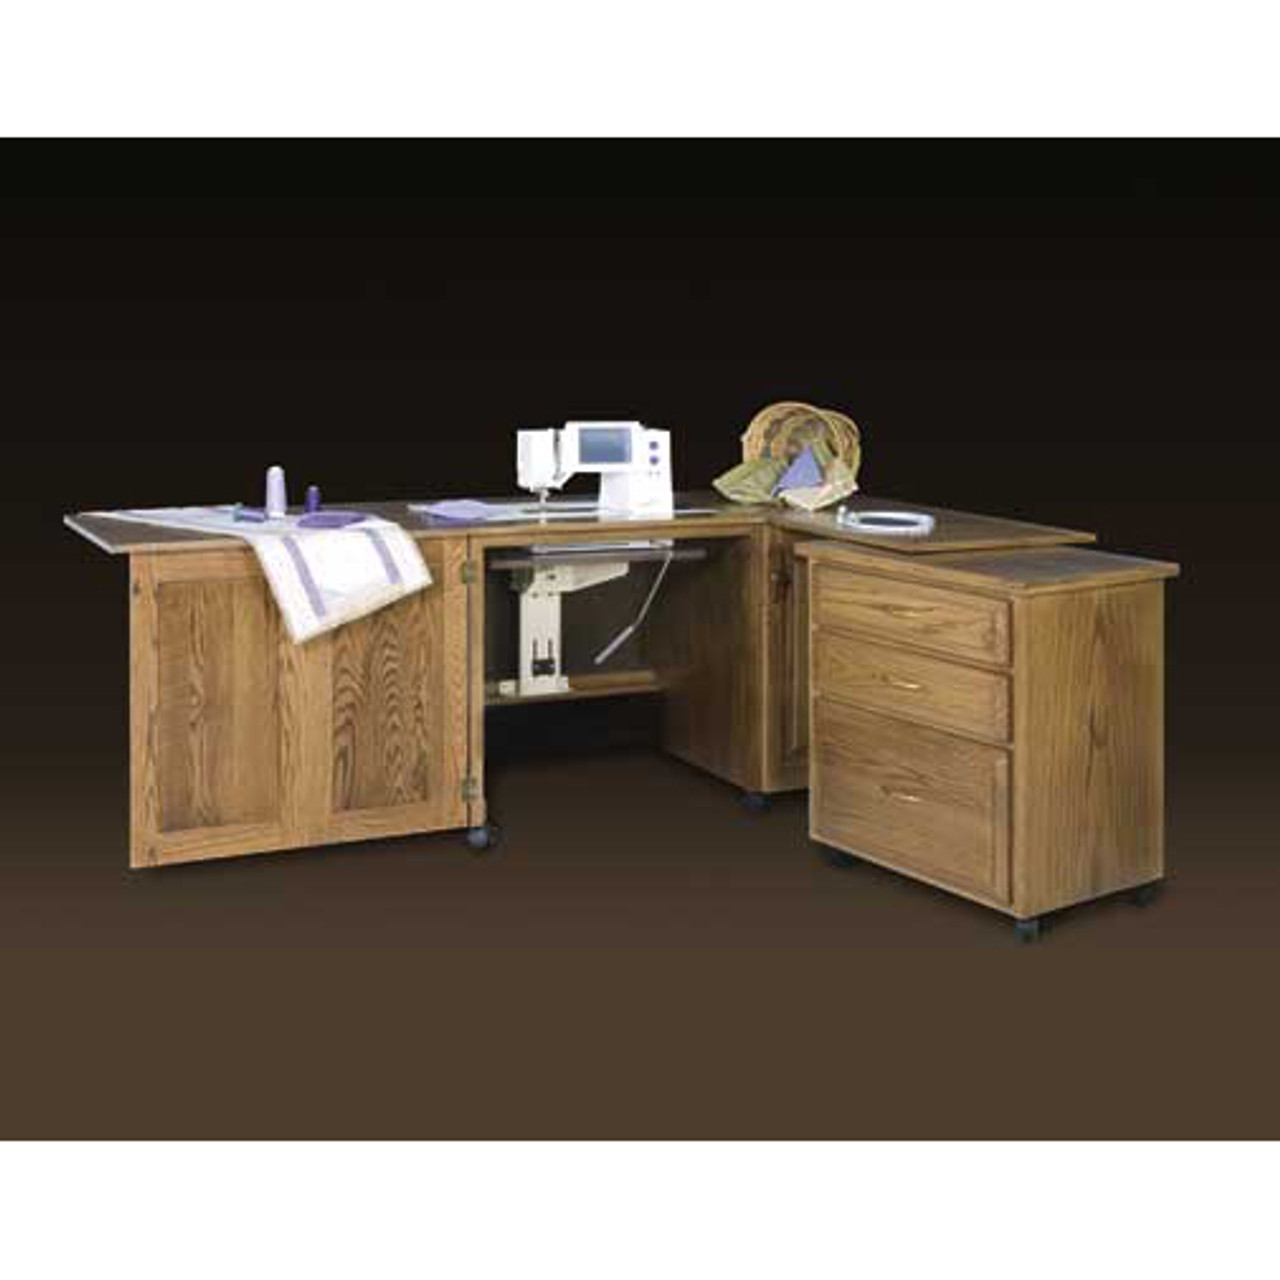 Schrocks Of Walnut Creek Embroidery Cabinet Duo In Real